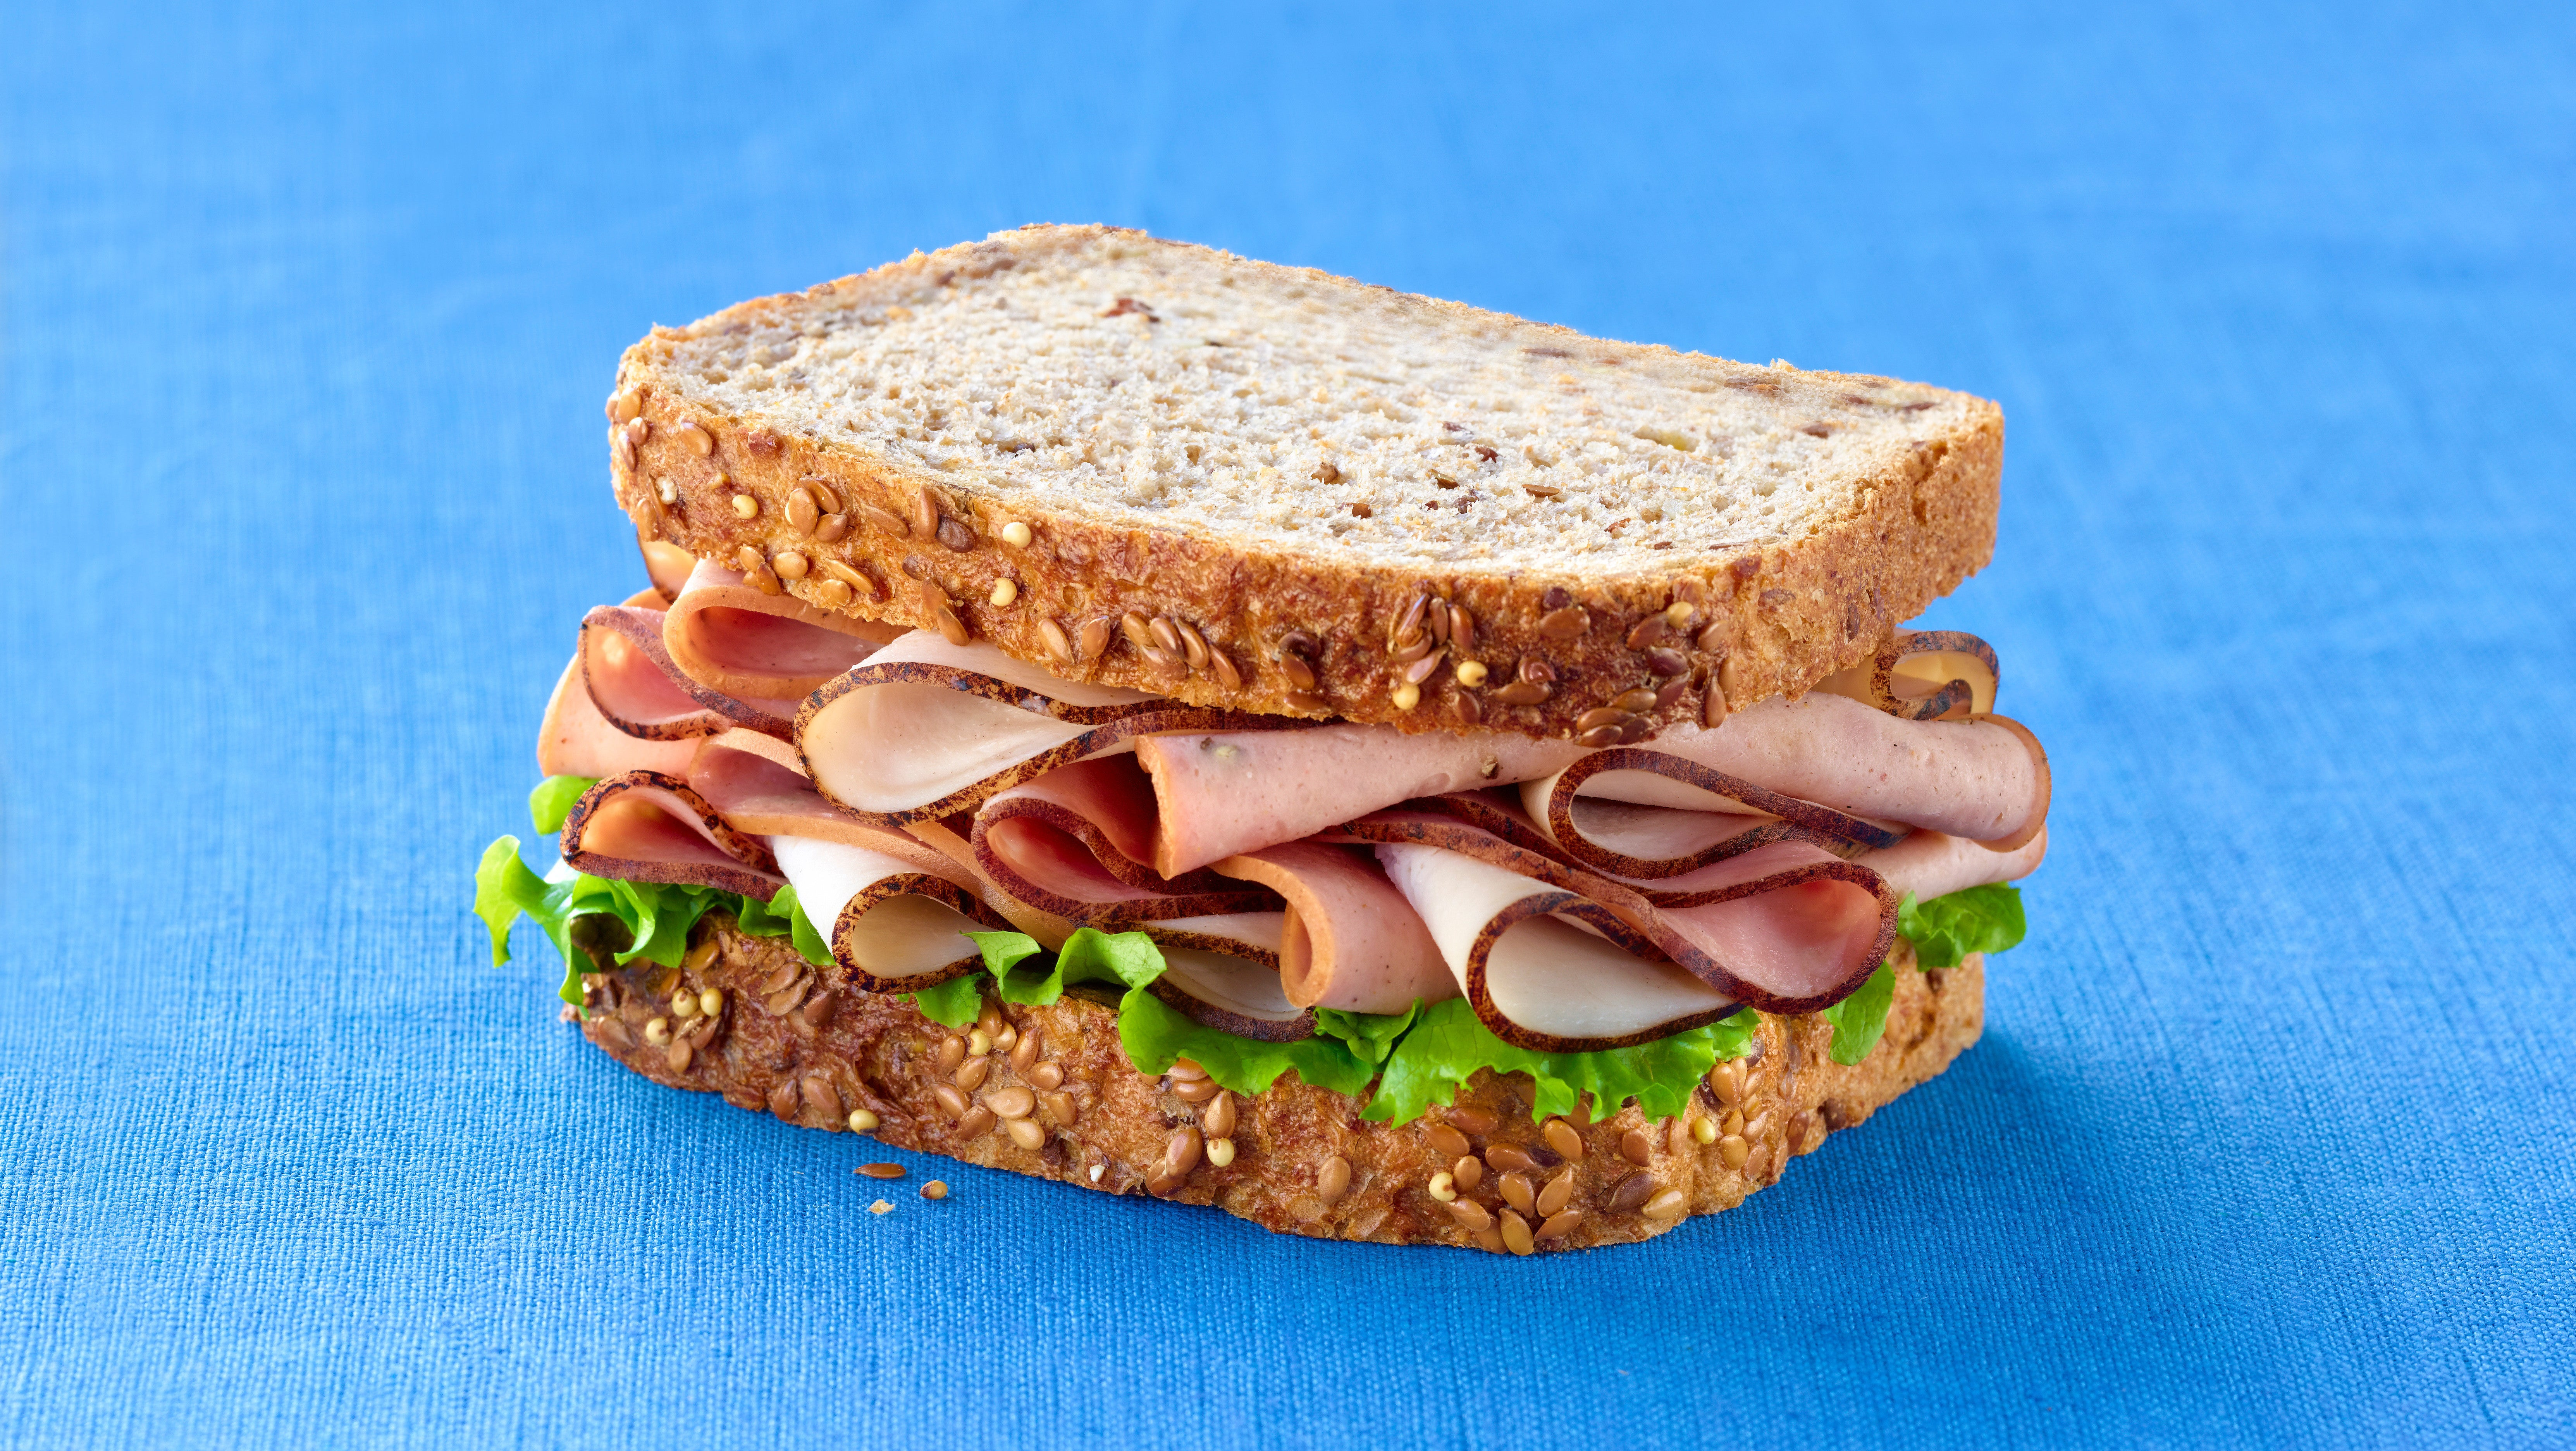 Get Your Kid To Act Differently With A 'Complaint Sandwich'